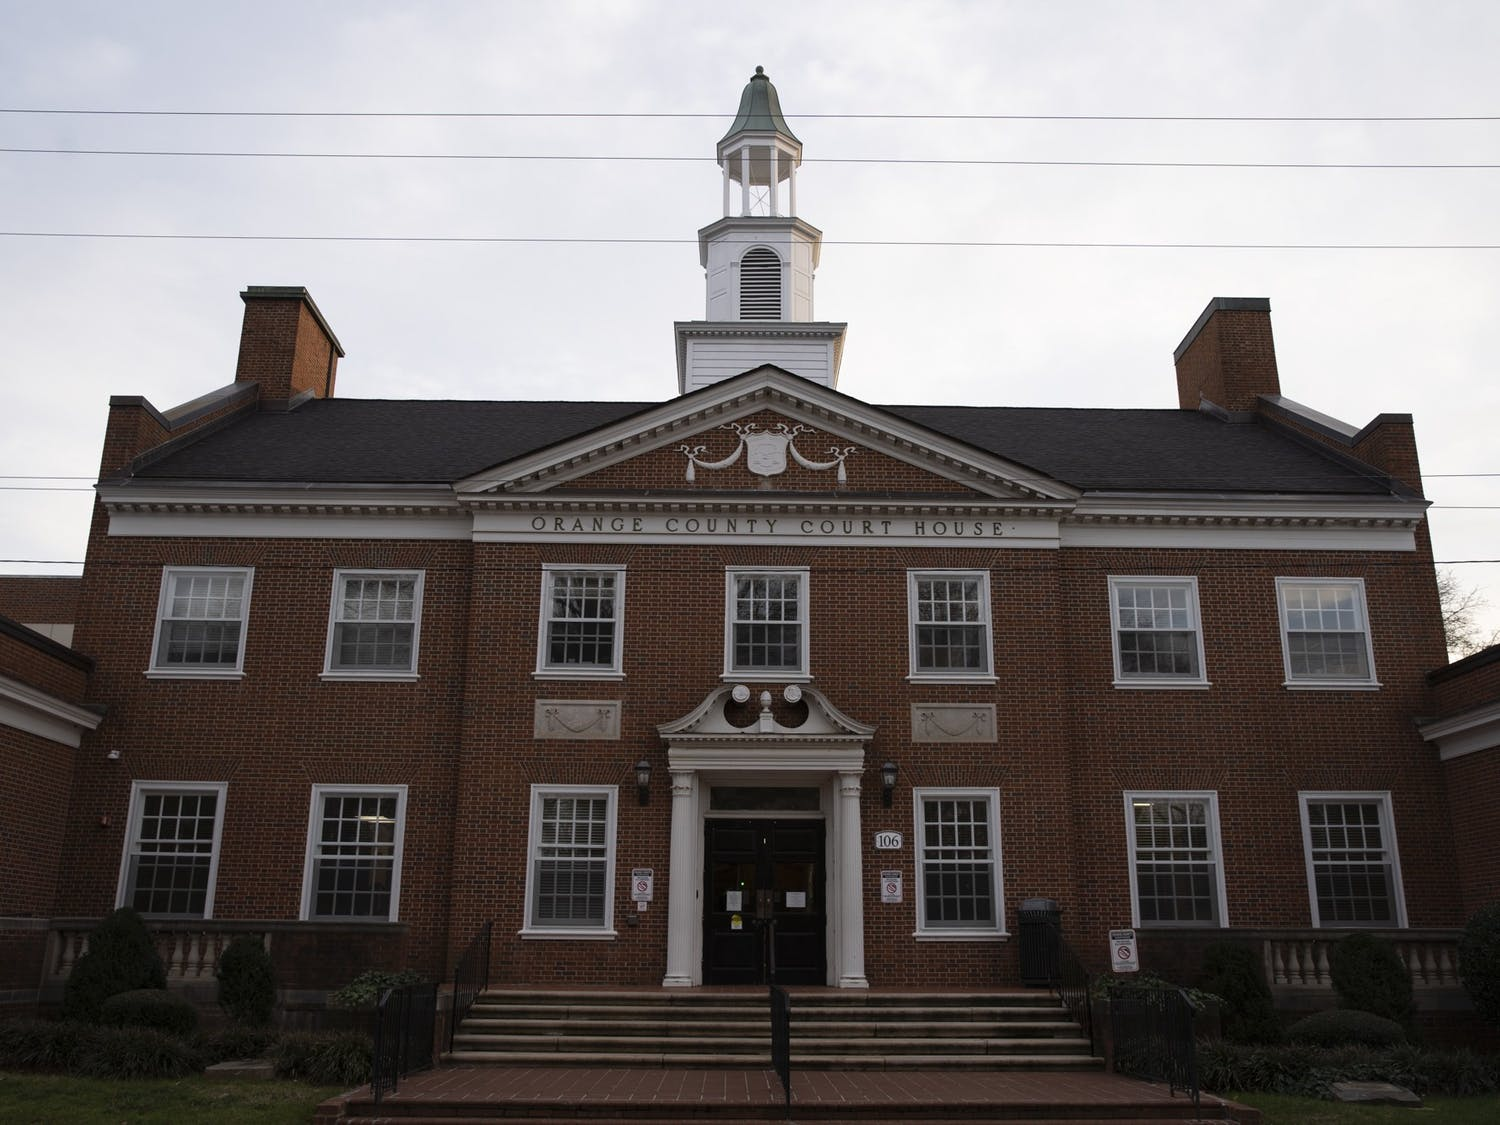 The Orange County Courthouse pictured on Jan. 29, 2020.